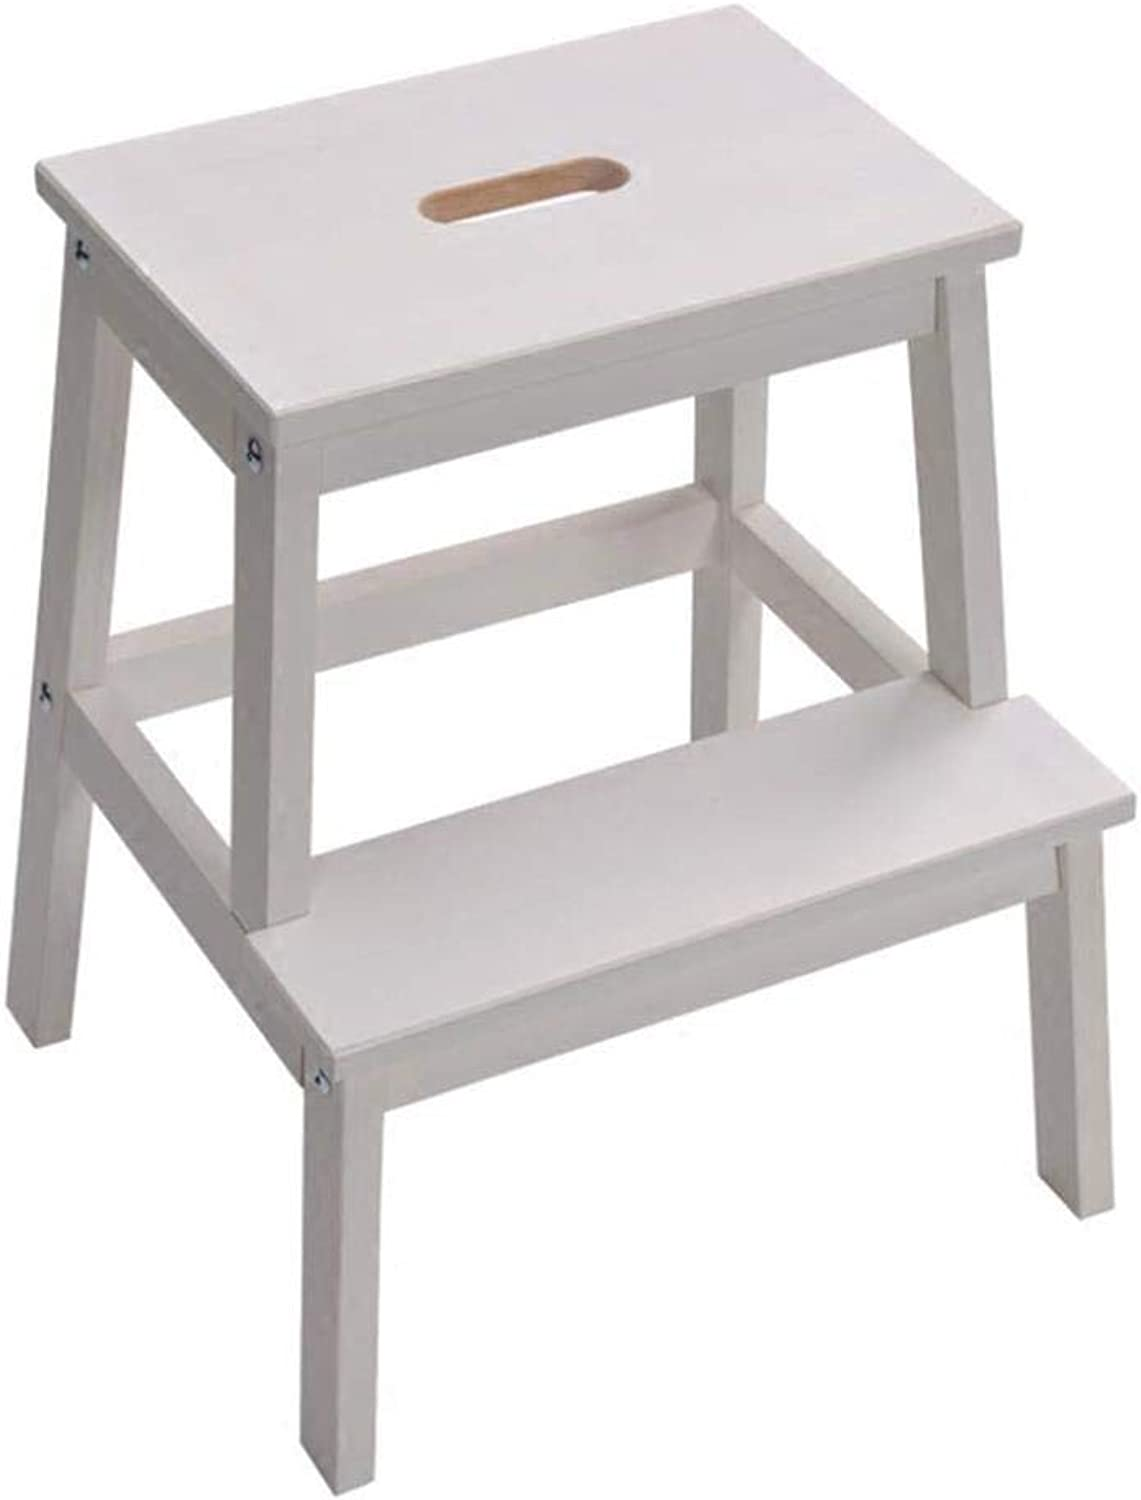 Step Stool Folding- Solid Wood Step Stool Step Stool Home Change shoes Bench Step Stool High Stool 43x39x50cm ZXMDMZ (color   Wood color)